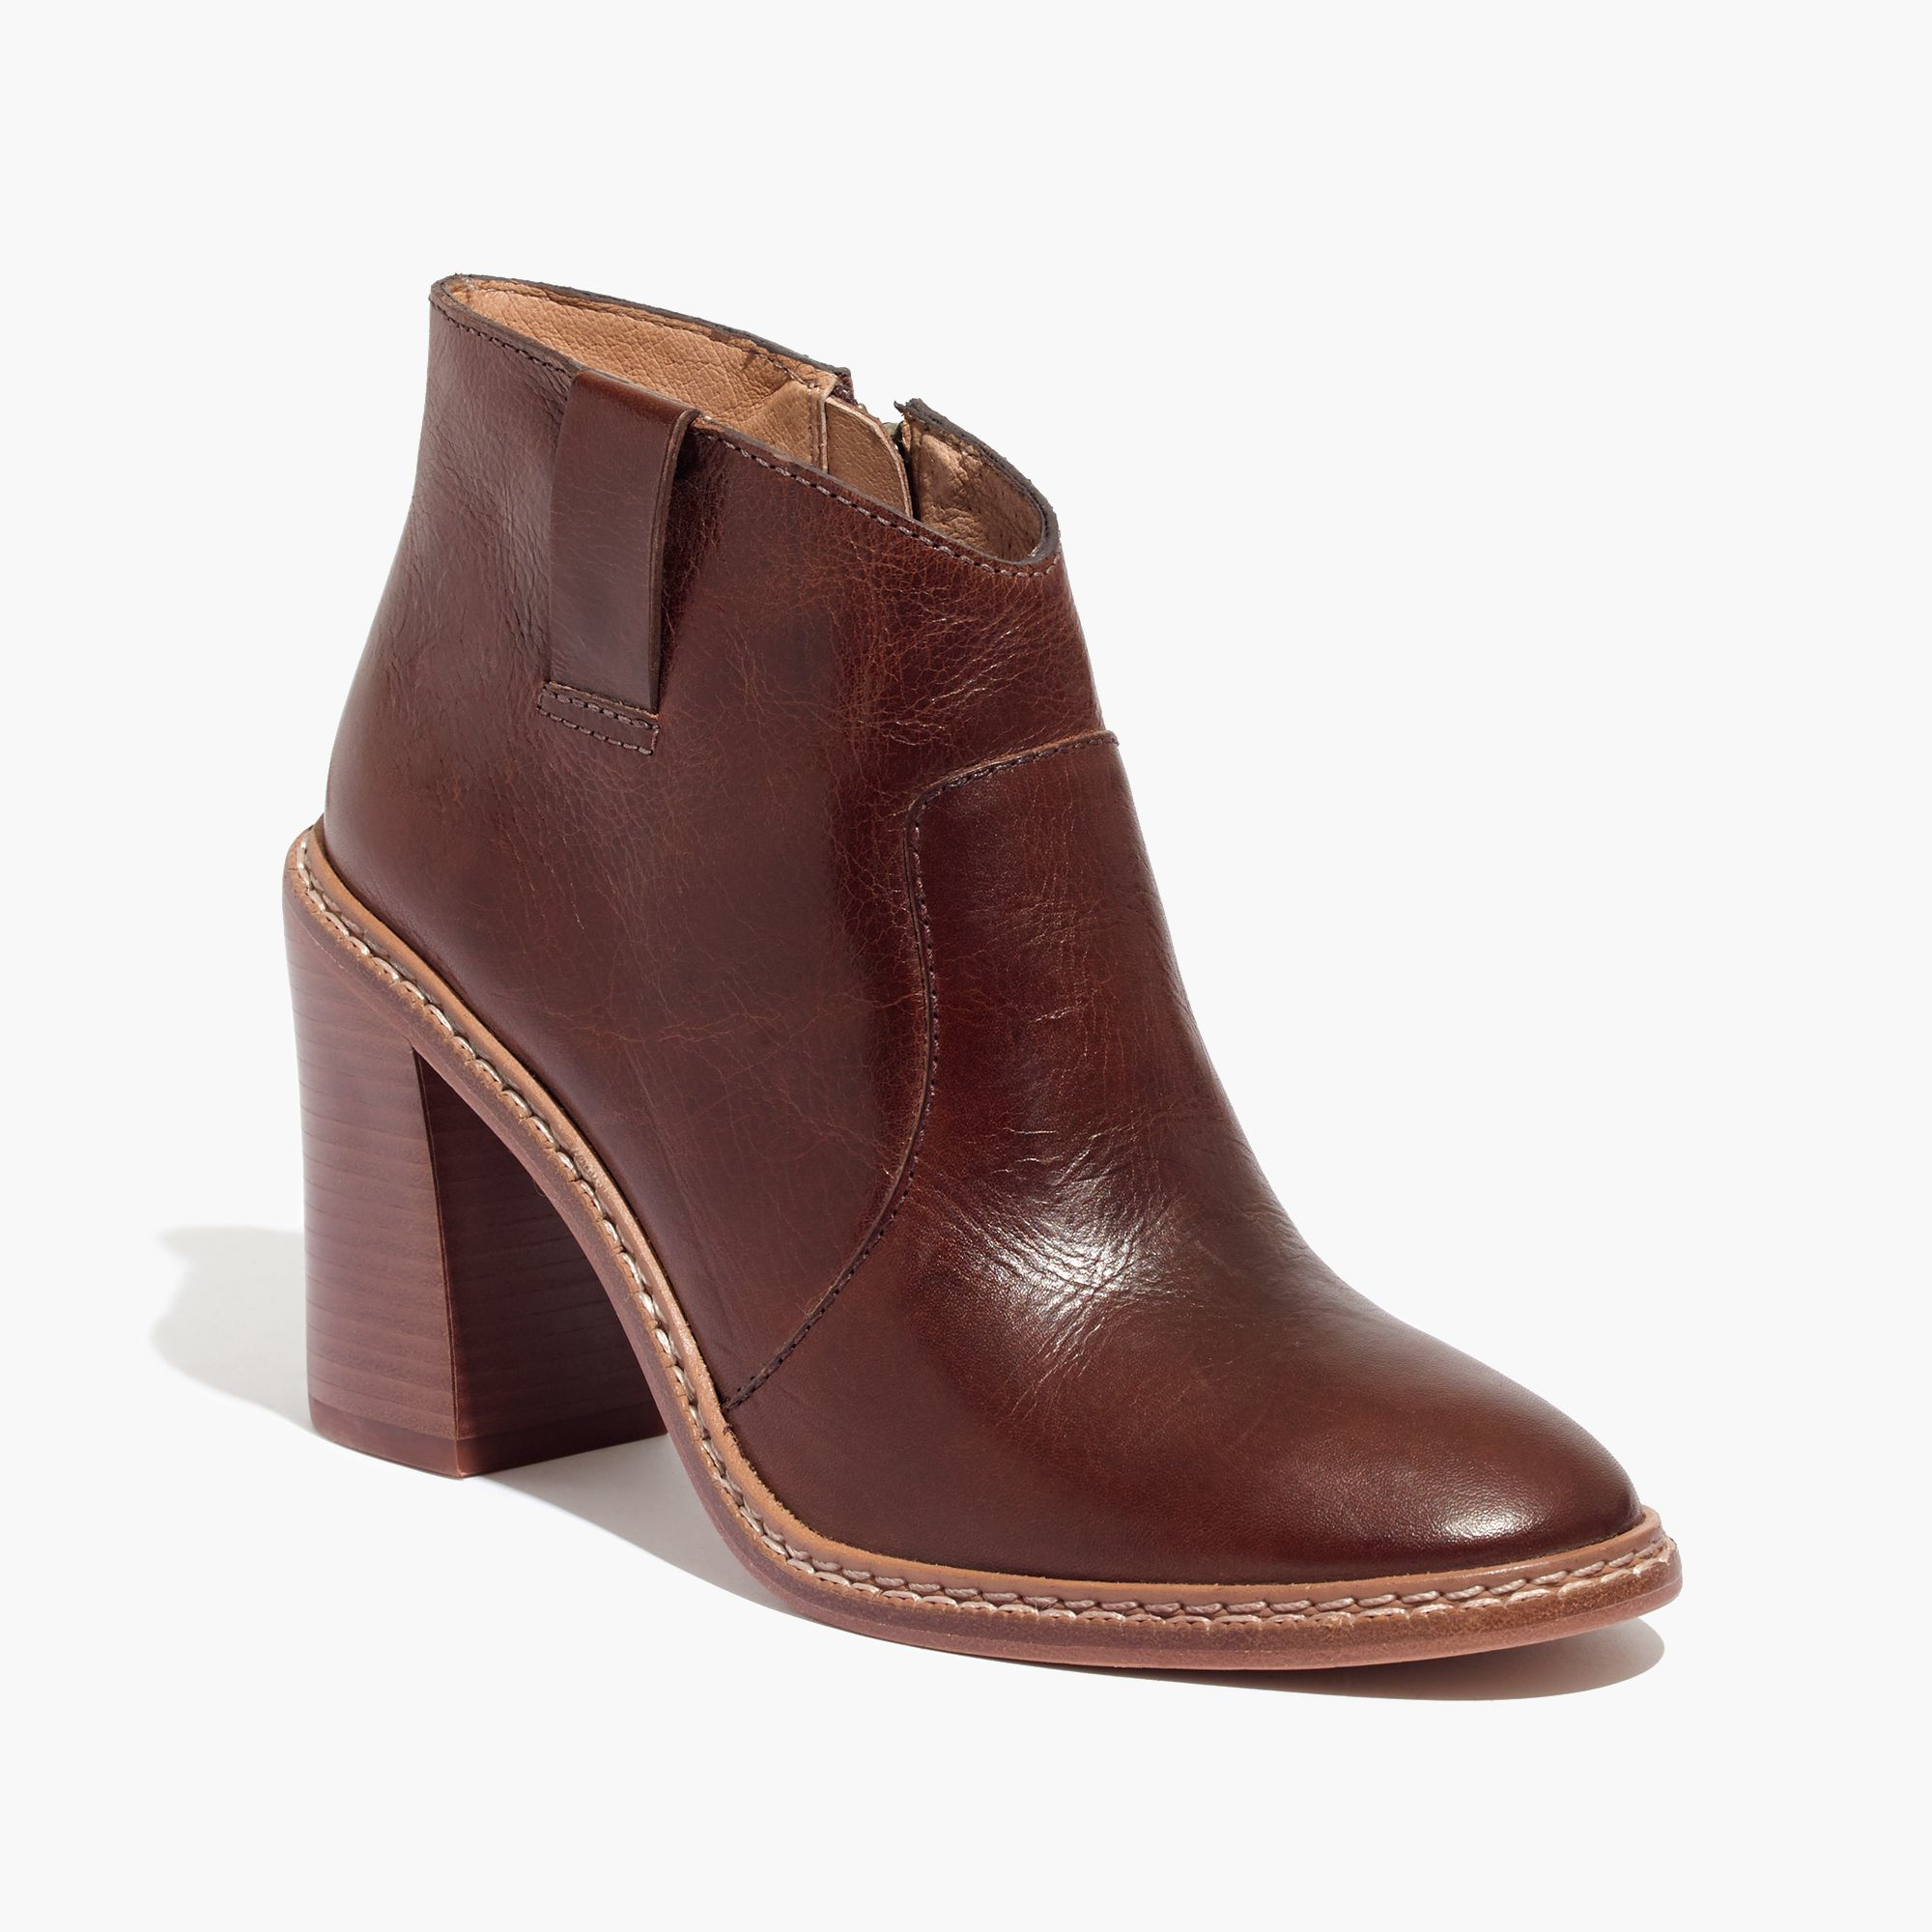 madewell rivet thread ankle boots in brown lyst